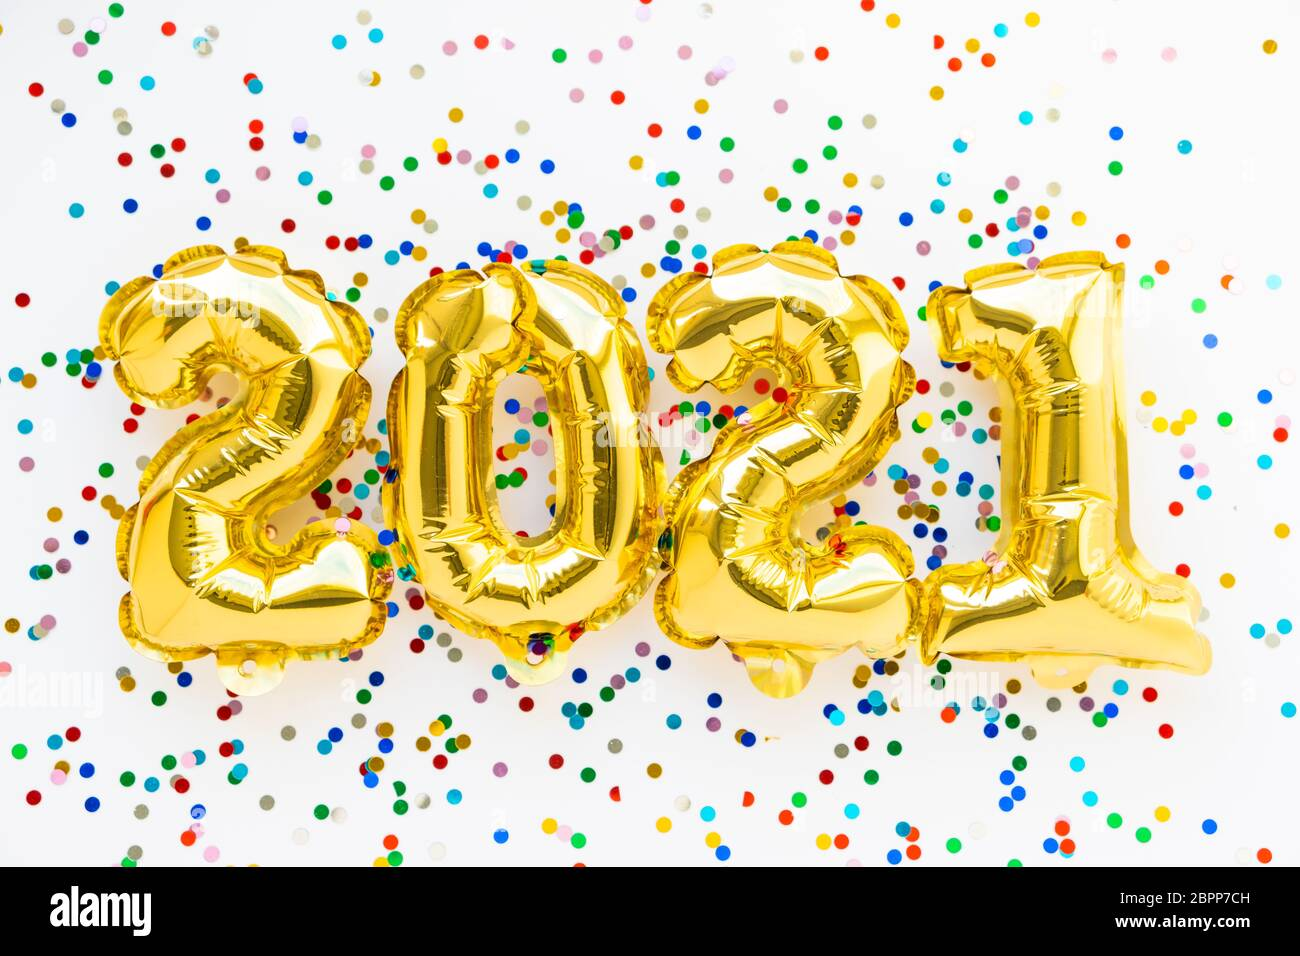 happy new year 2021 celebration gold foil balloons numeral 2021 and confetti on white background flat lay stock photo alamy https www alamy com happy new year 2021 celebration gold foil balloons numeral 2021 and confetti on white background flat lay image358218577 html